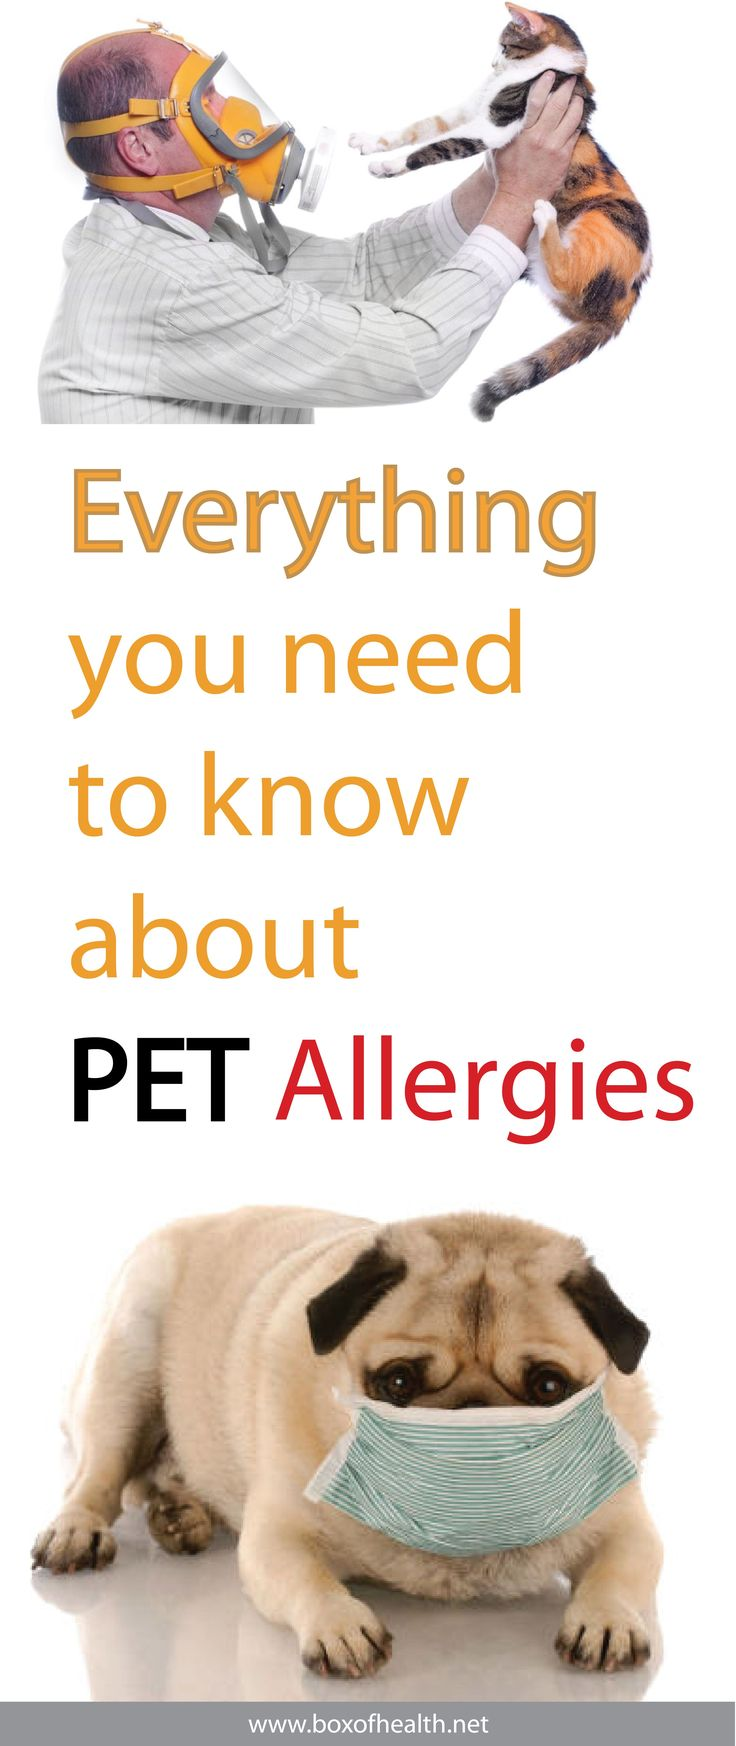 If your nose runs, your eyes water or you start sneezing and wheezing after petting or playing with a dog or cat, you likely have a pet allergy. A pet allergy can contribute to constant allergy symptoms, as exposure can occur at work, school, daycare or in other indoor environments, even if a pet is not present. #runningadaycare